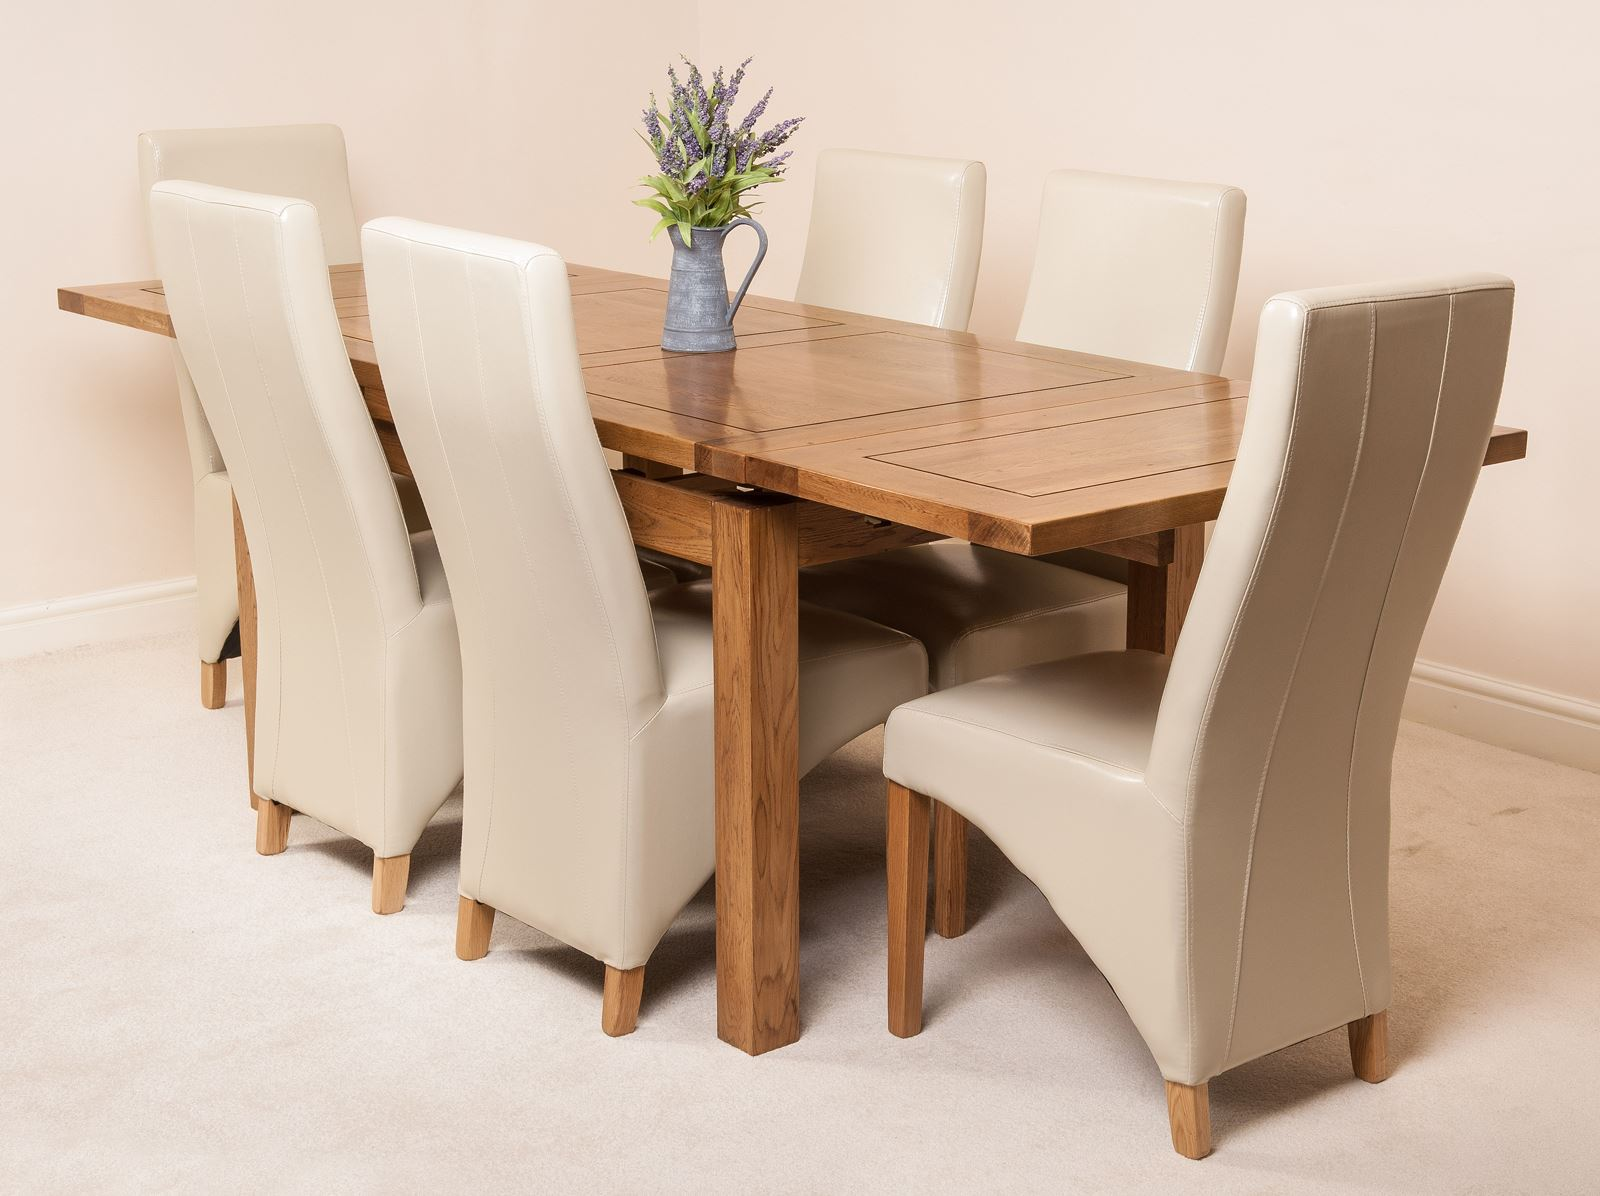 oak farmhouse chairs upholstered parsons dining rustic solid 160cm extending table